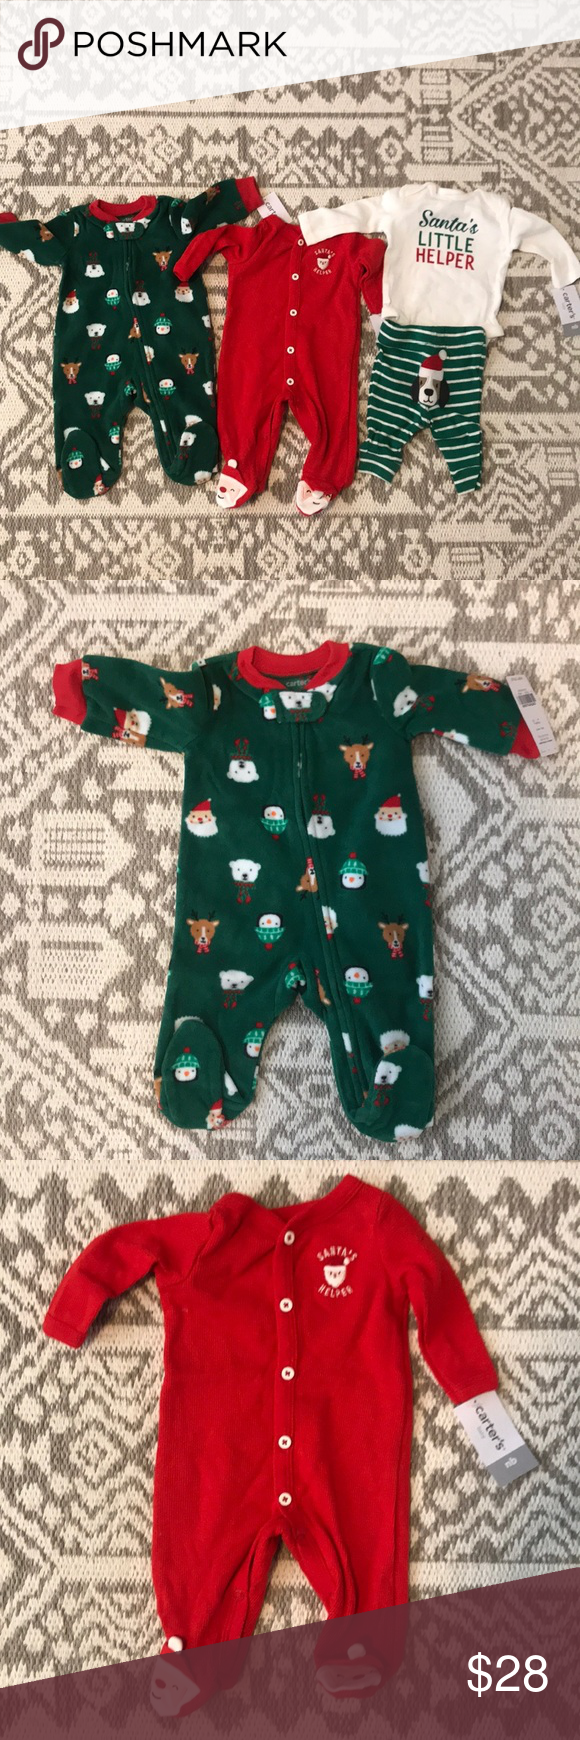 ba12fe338 BUNDLE Newborn Carter s Christmas PJ s NWT in 2018